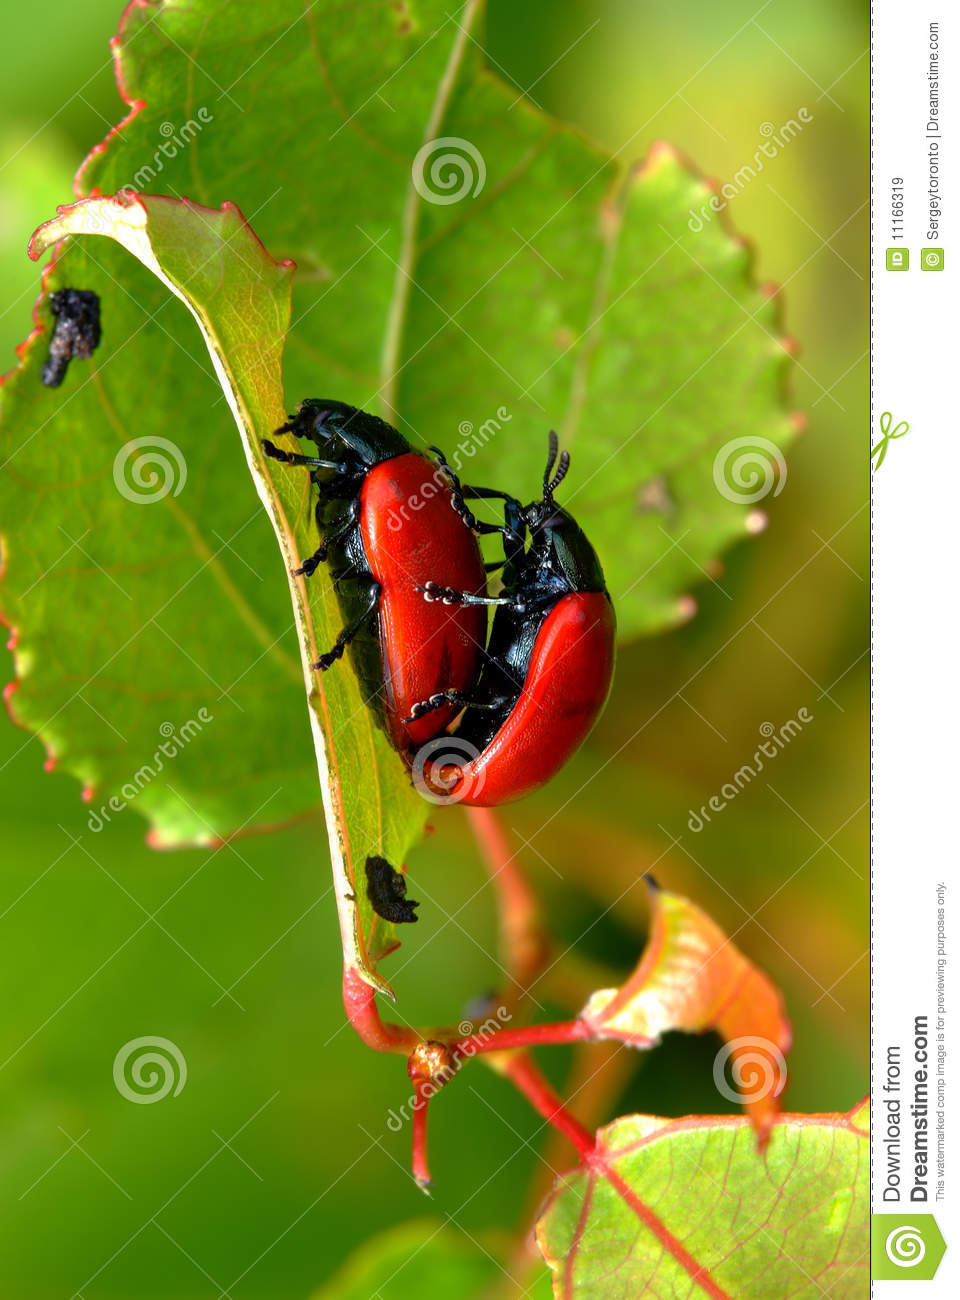 Beetle Reproduction Red Leaf Beetles Repro...